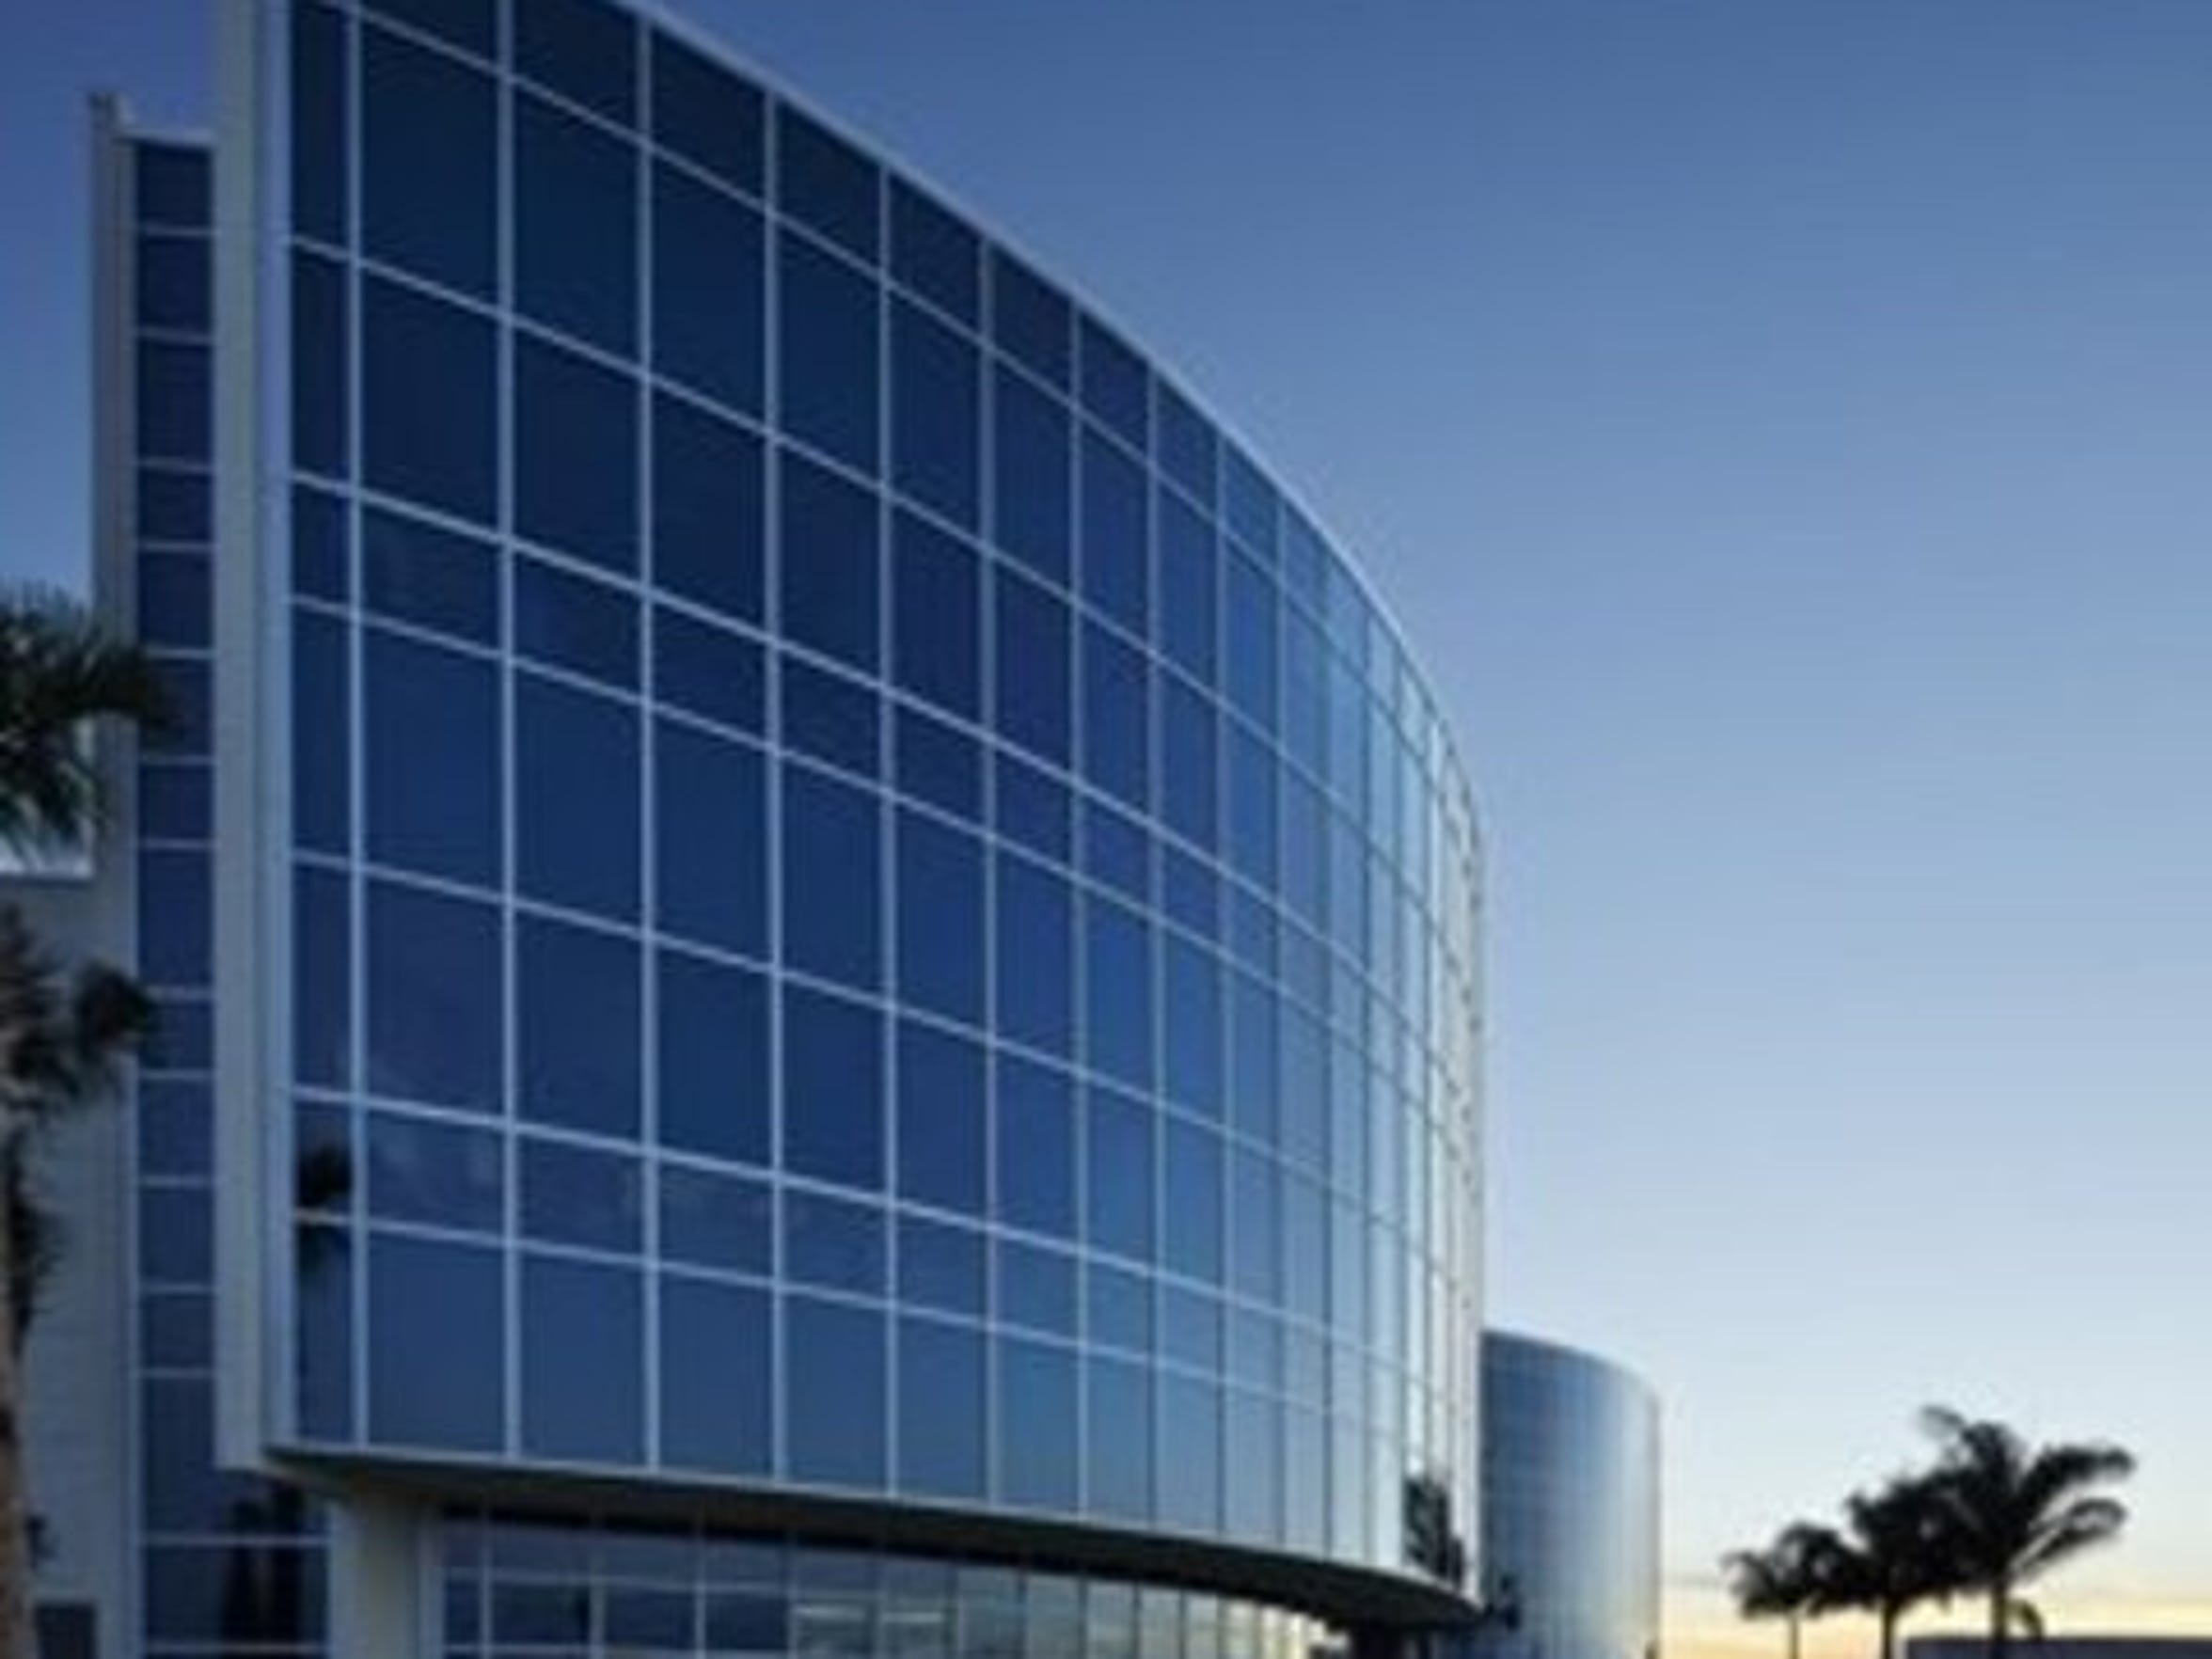 Exterior of the former VGTI Florida building at the